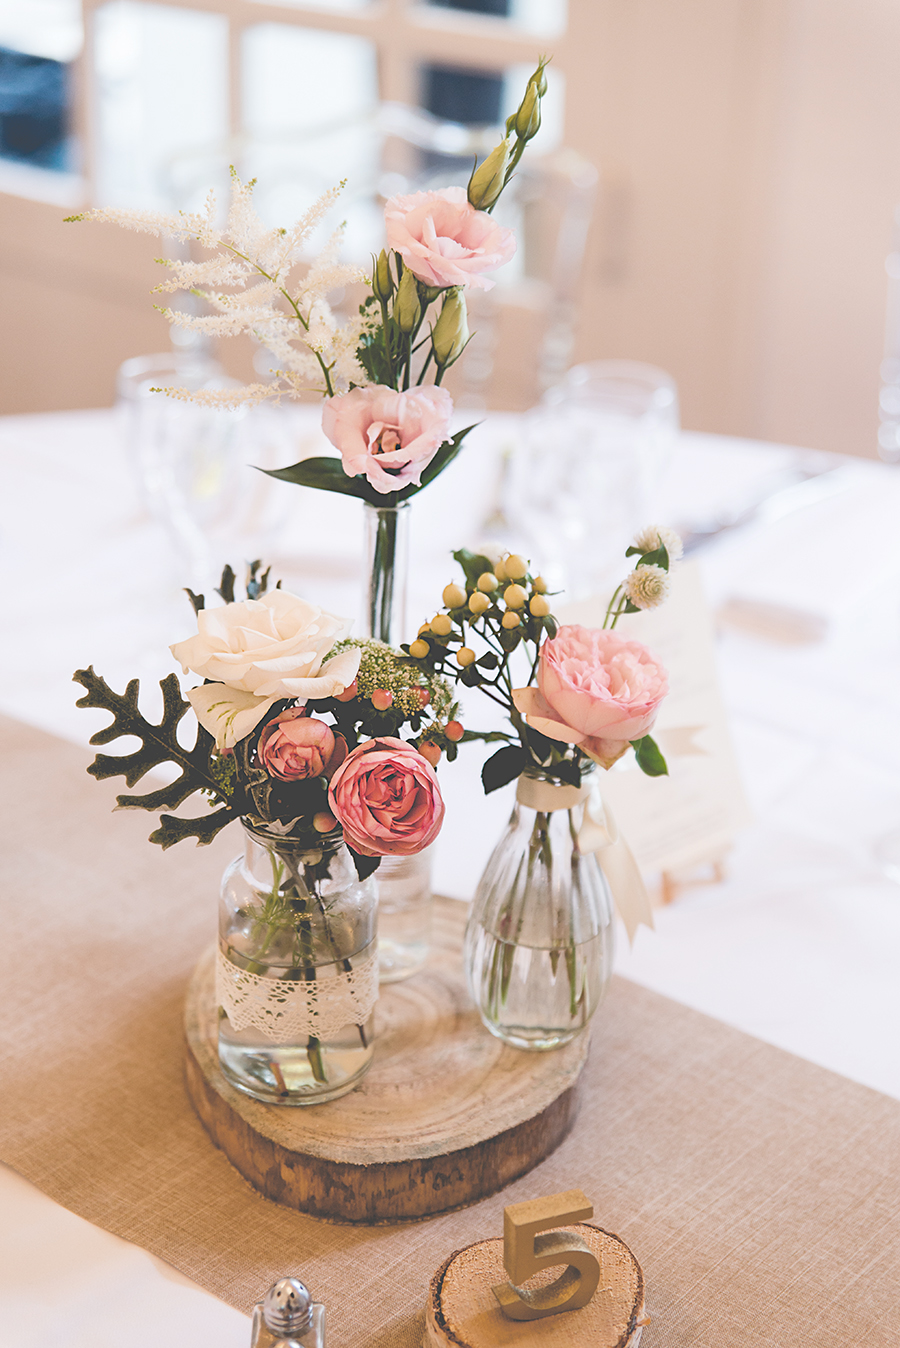 decoration-table-mariage-photographe-nord-tourcoing-lille-bondues-one-moment-photographie-1